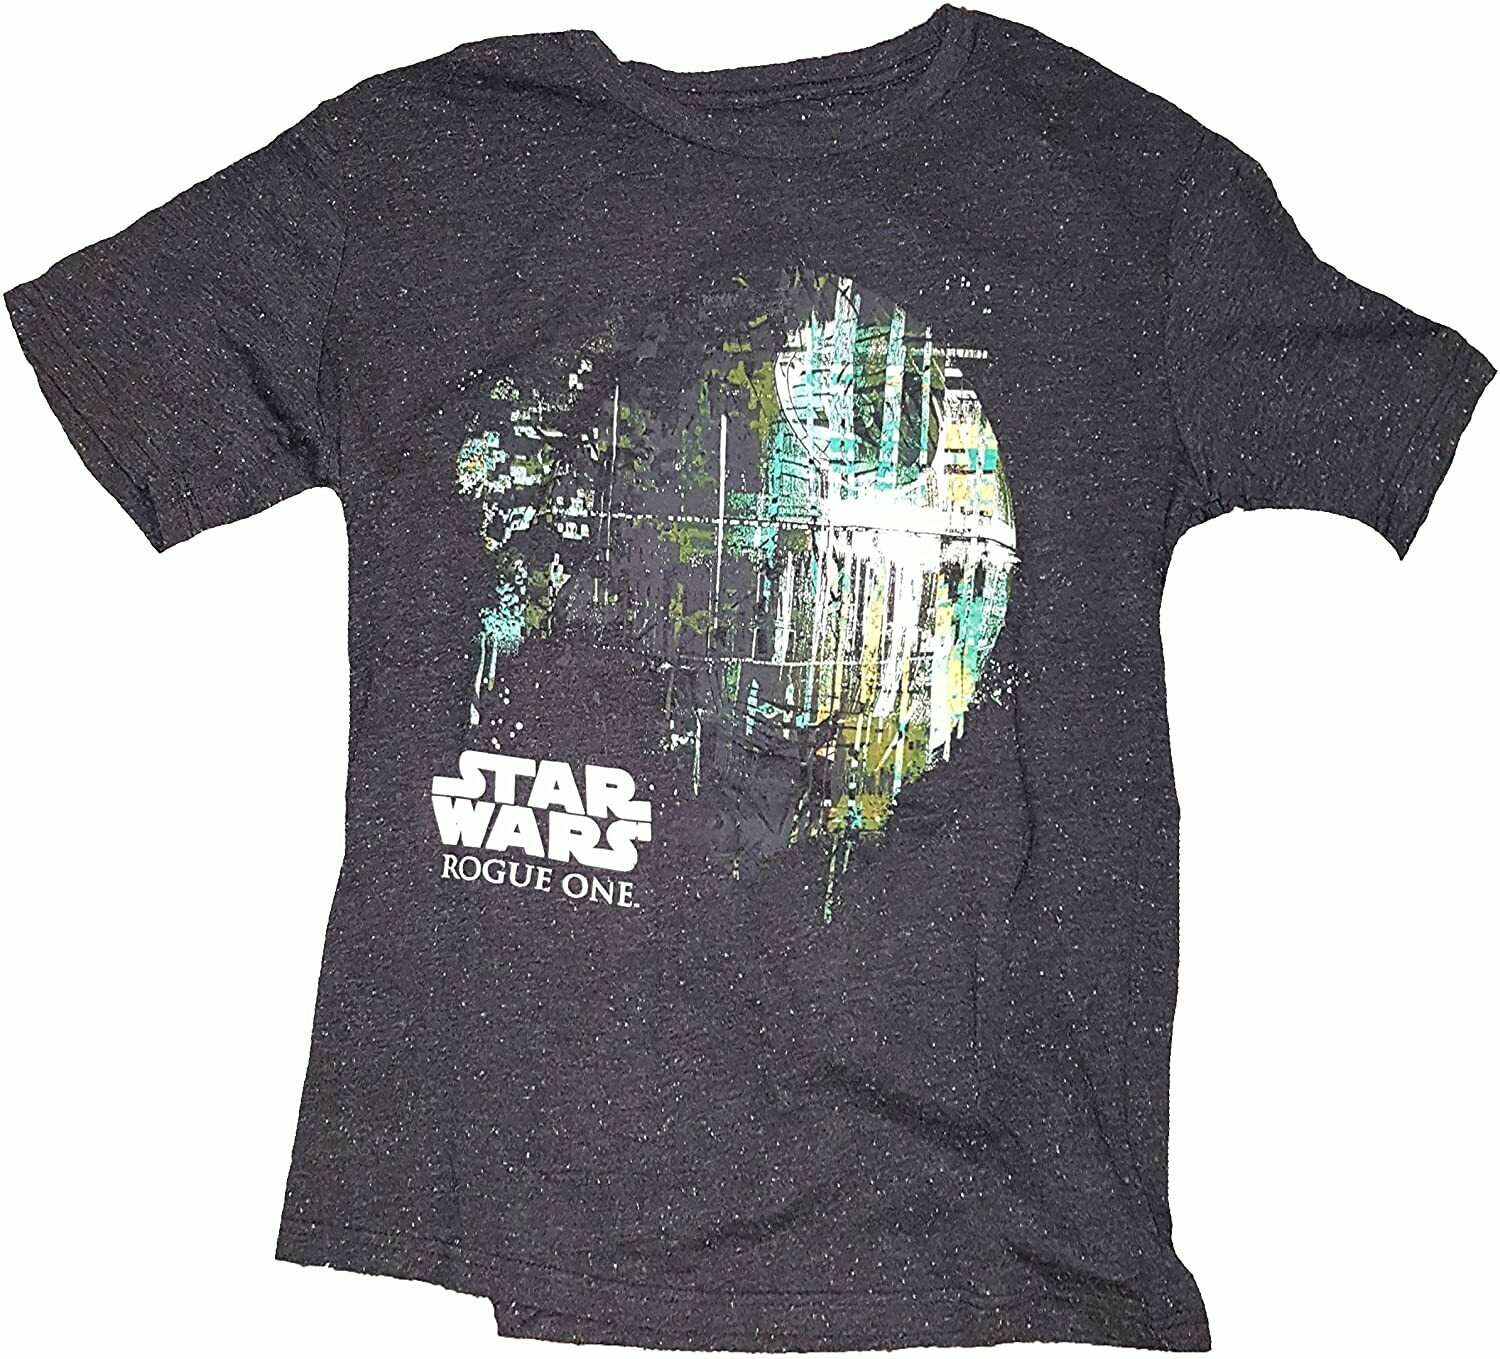 Star Wars Dripping Deathstar T-shirt XL